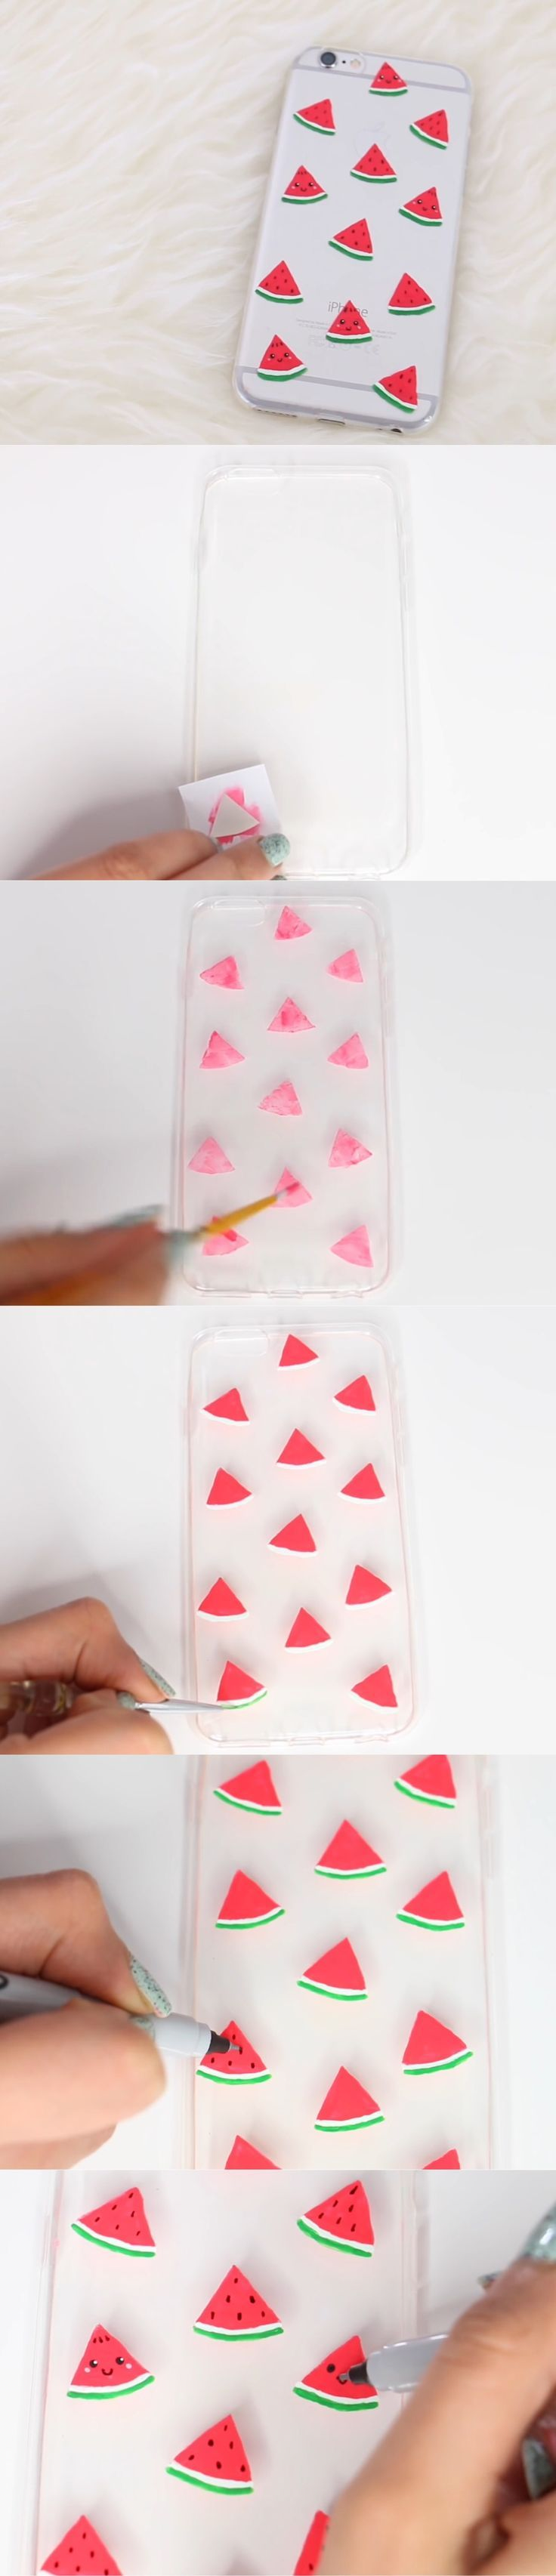 Nim C's watermelon phone case DIY tutorial. So cute!!!!